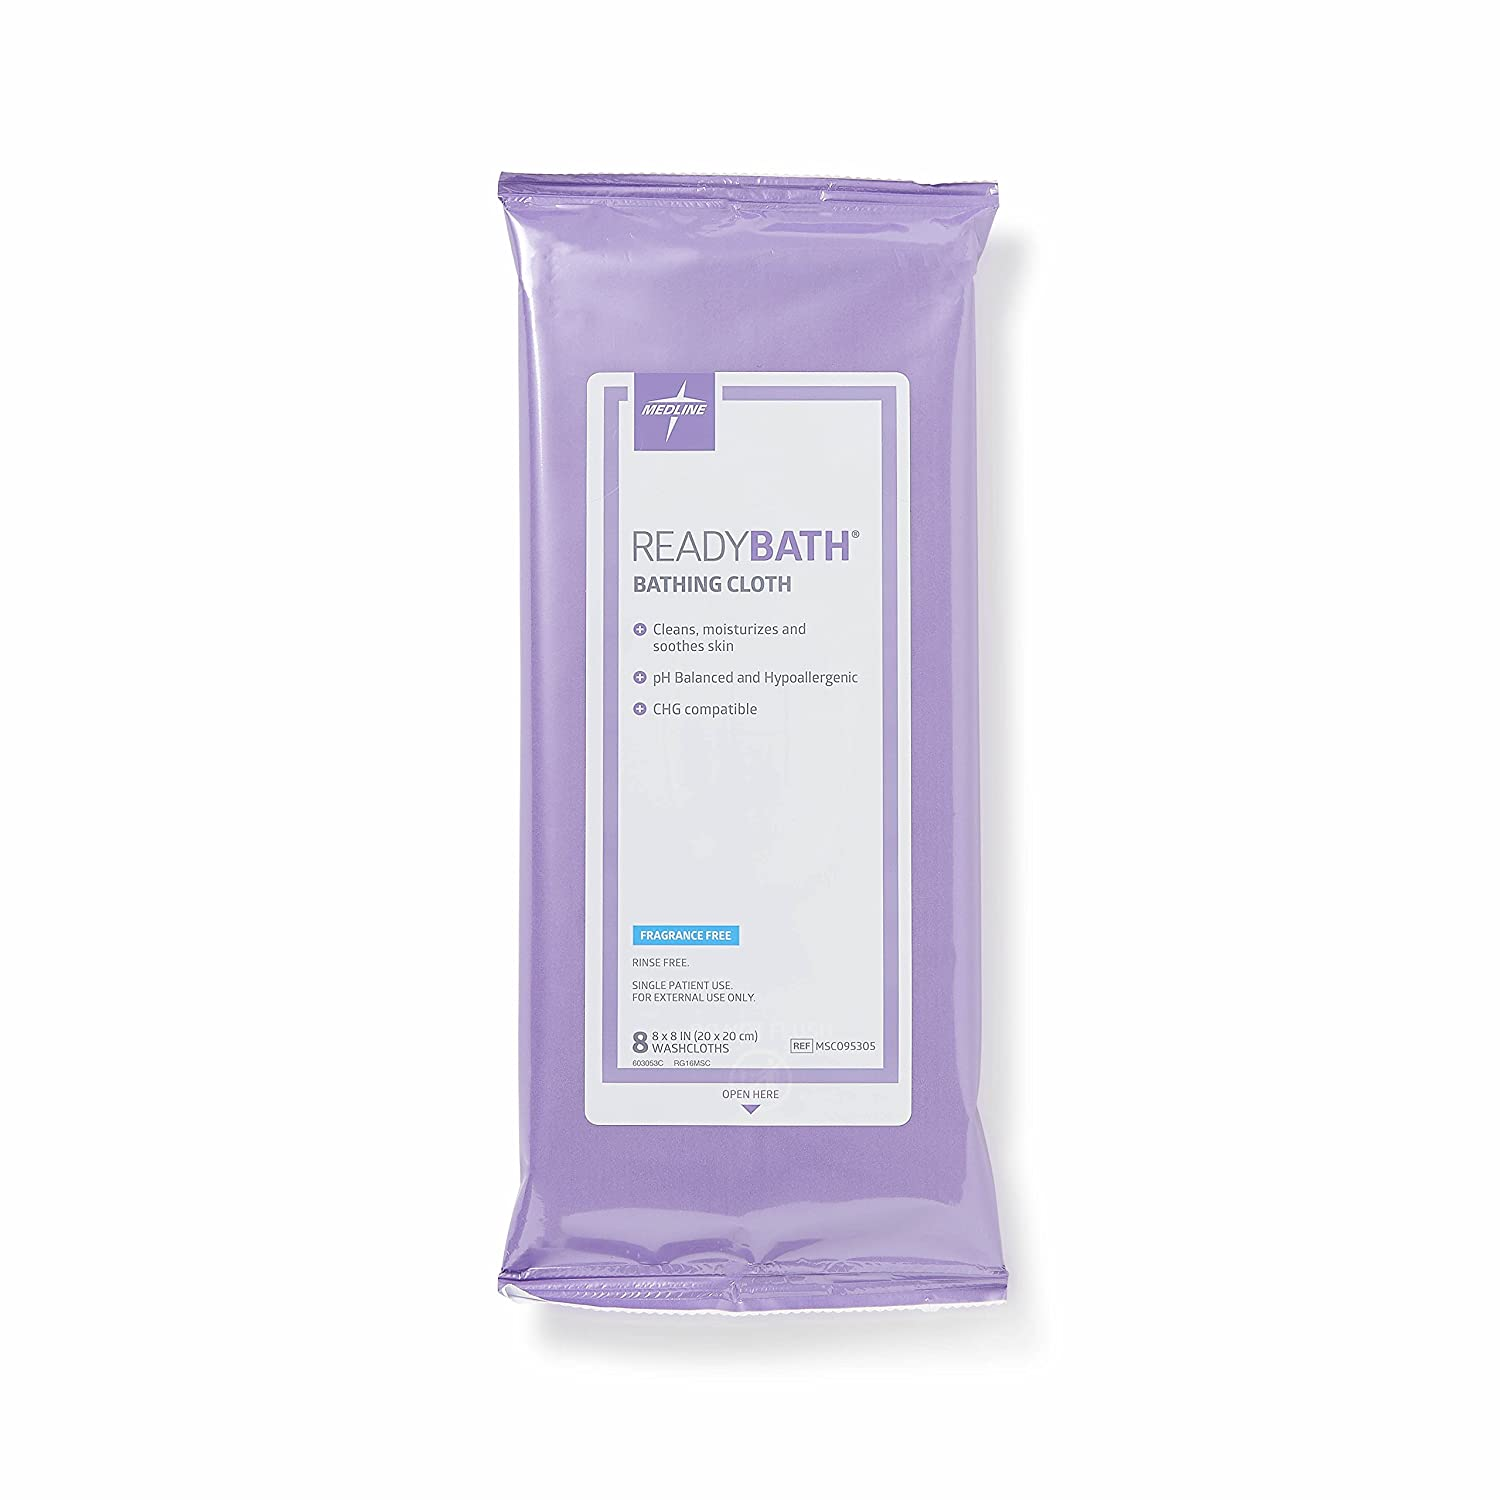 Medline ReadyBath Unscented Body Cleansing Cloths, Standard Weight Wipes (8 Count Pack, 30 Packs)